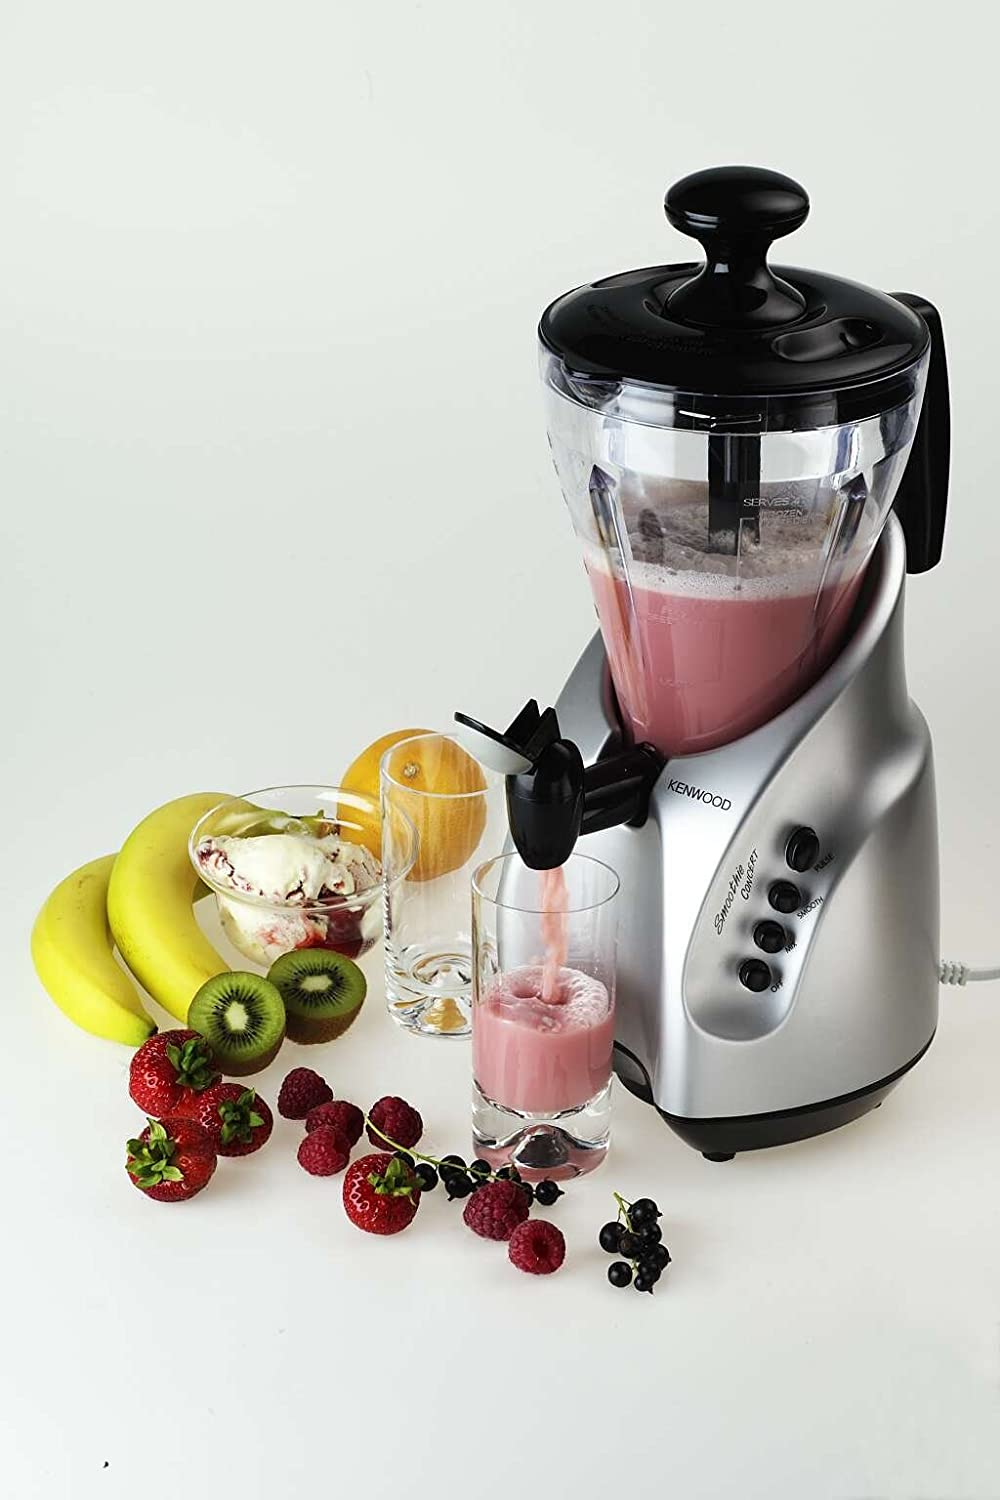 Kenwood Blender Smoothie Concert SB255 Mezclador de plástico, 500 W, color plata: Amazon.es: Hogar